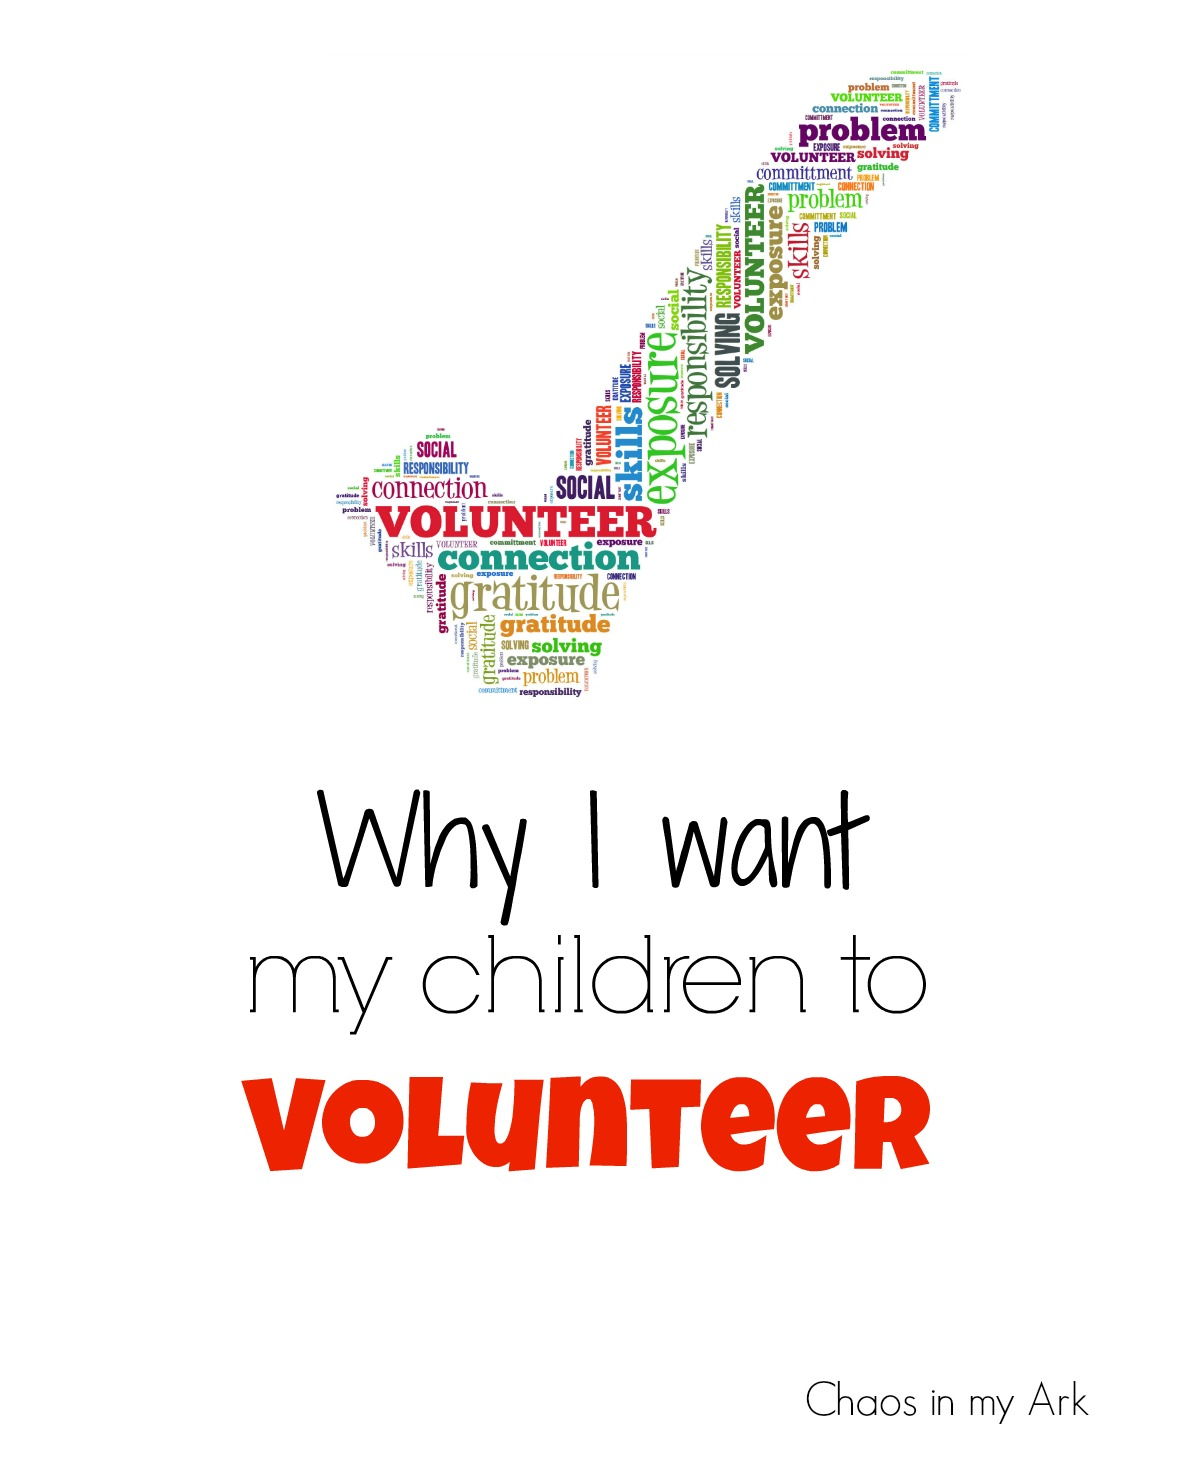 i want you to volunteer - photo #20